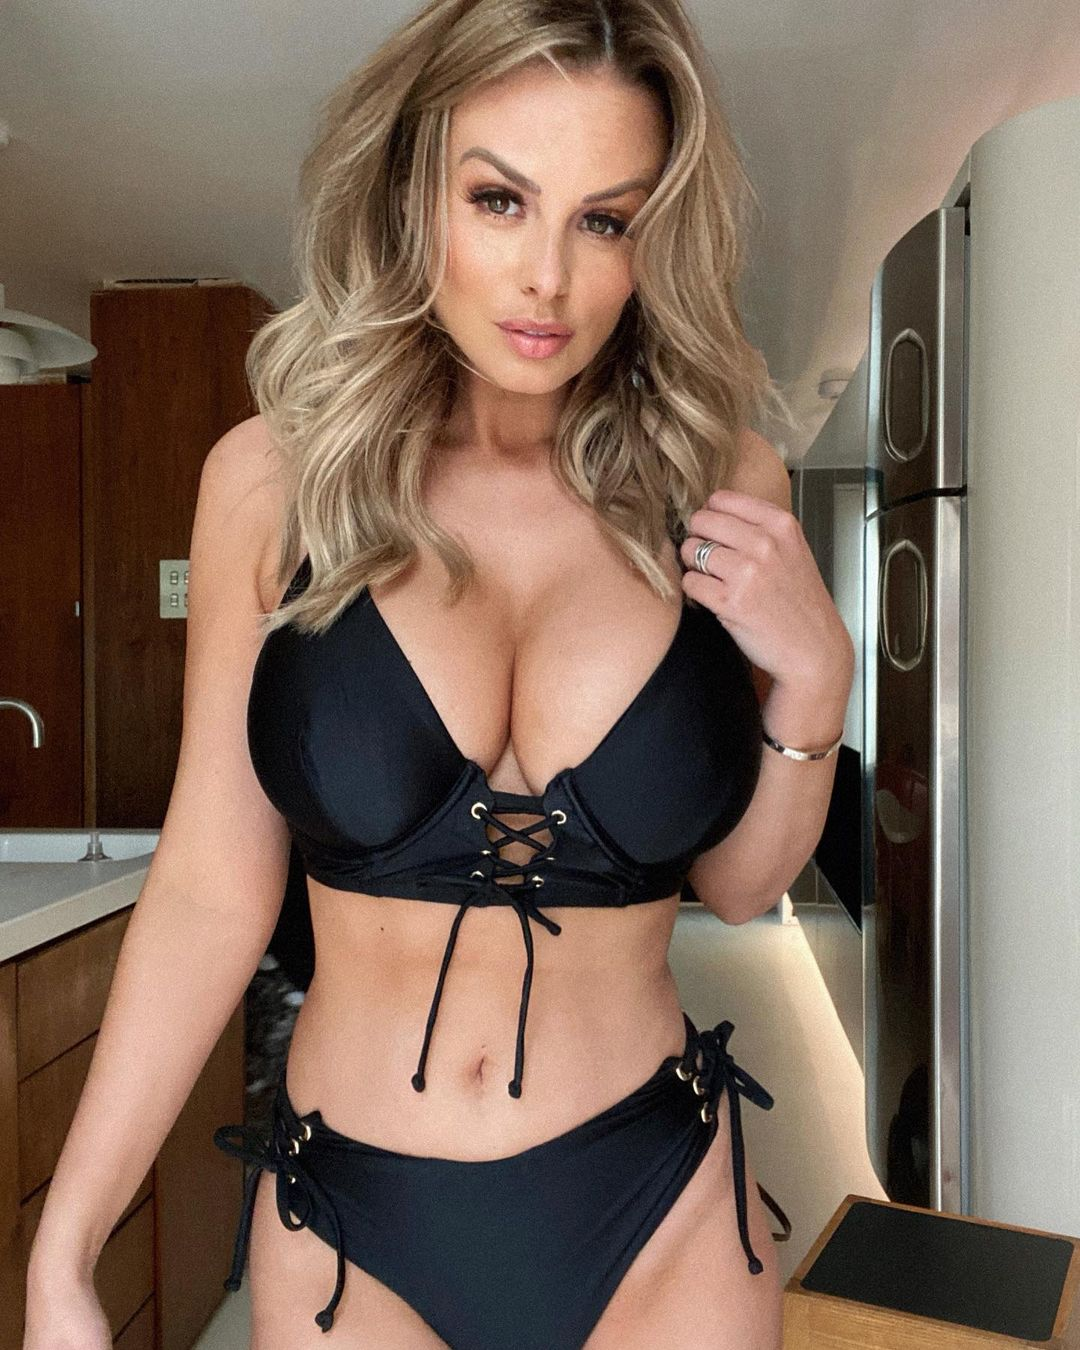 Who is Rhian Sugden Immoral offer to the famous model 4